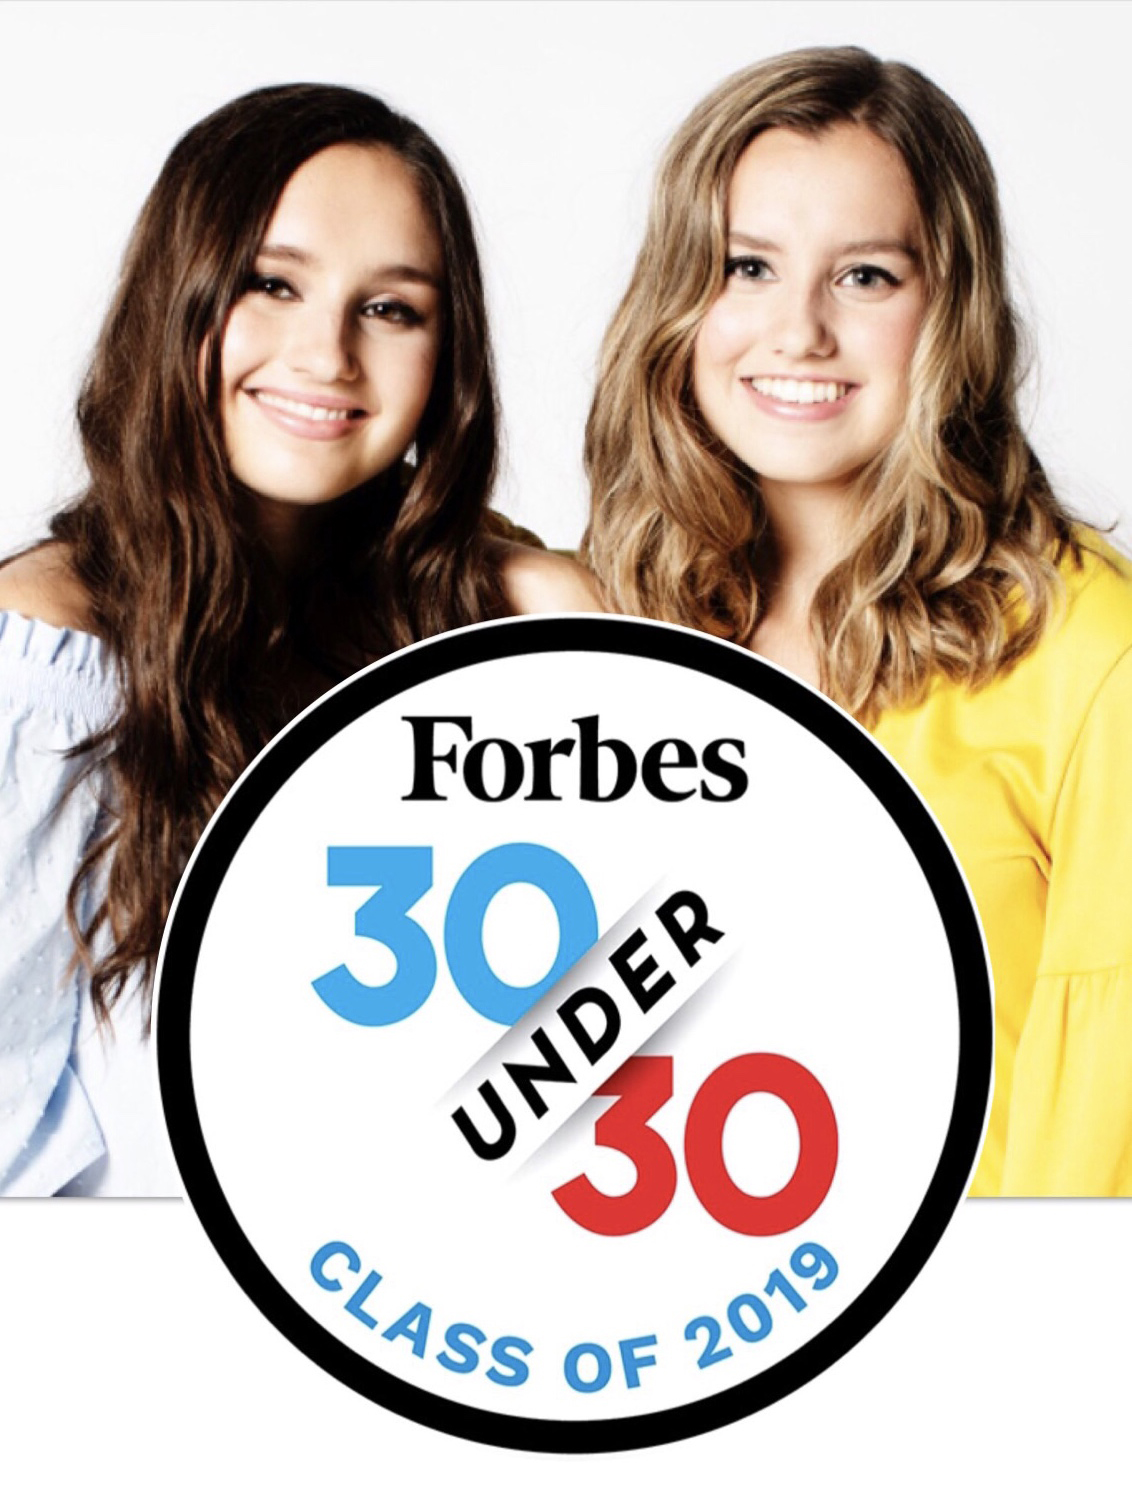 Da Bomb Bath Fizzers sisters Isabel and Caroliine Bercaw in Forbes 30 under 30 list. Links to the Forbes article.